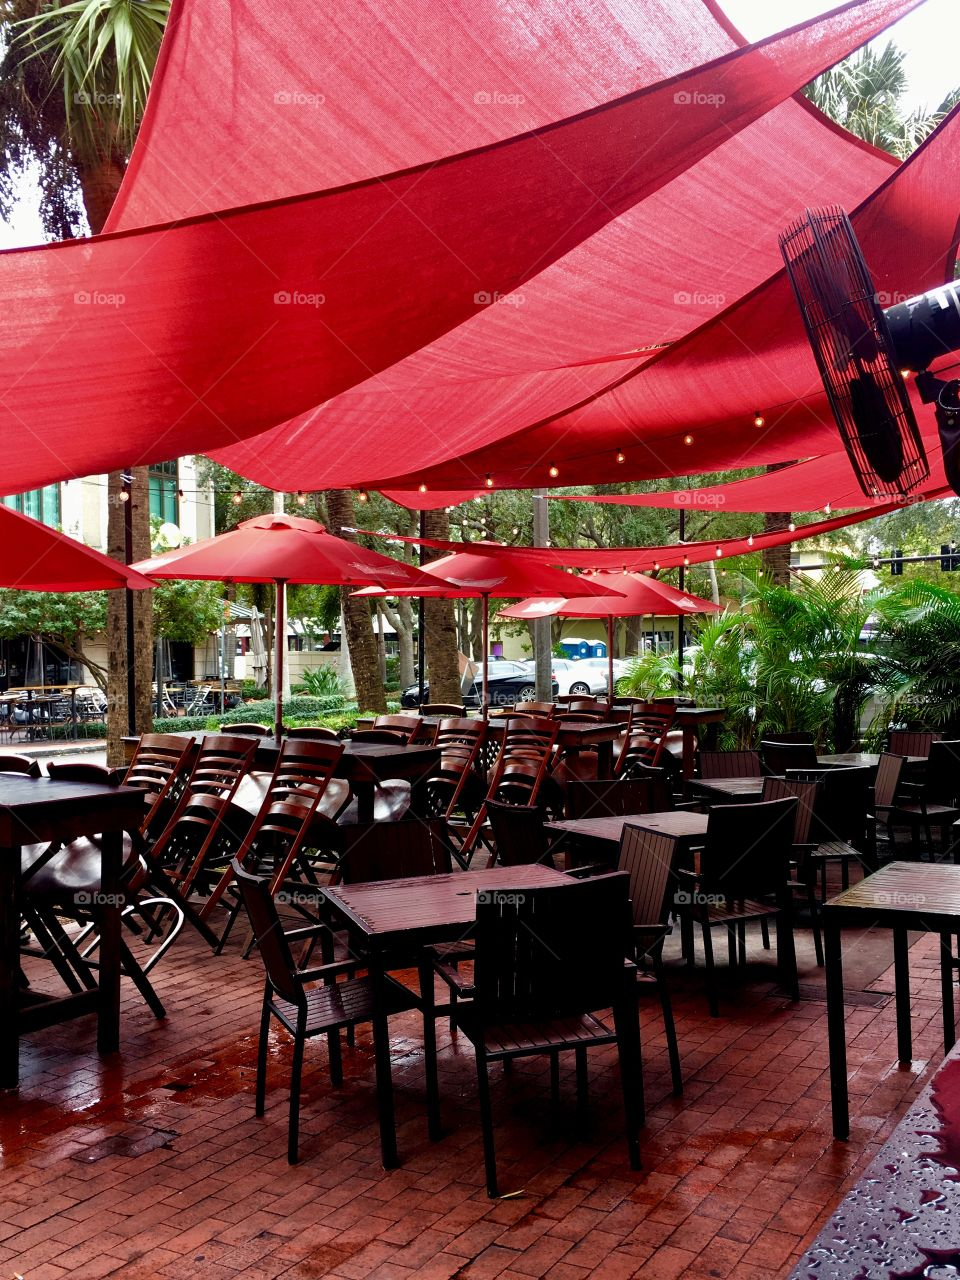 Sidewalk cafe with red shade sails and umbrellas